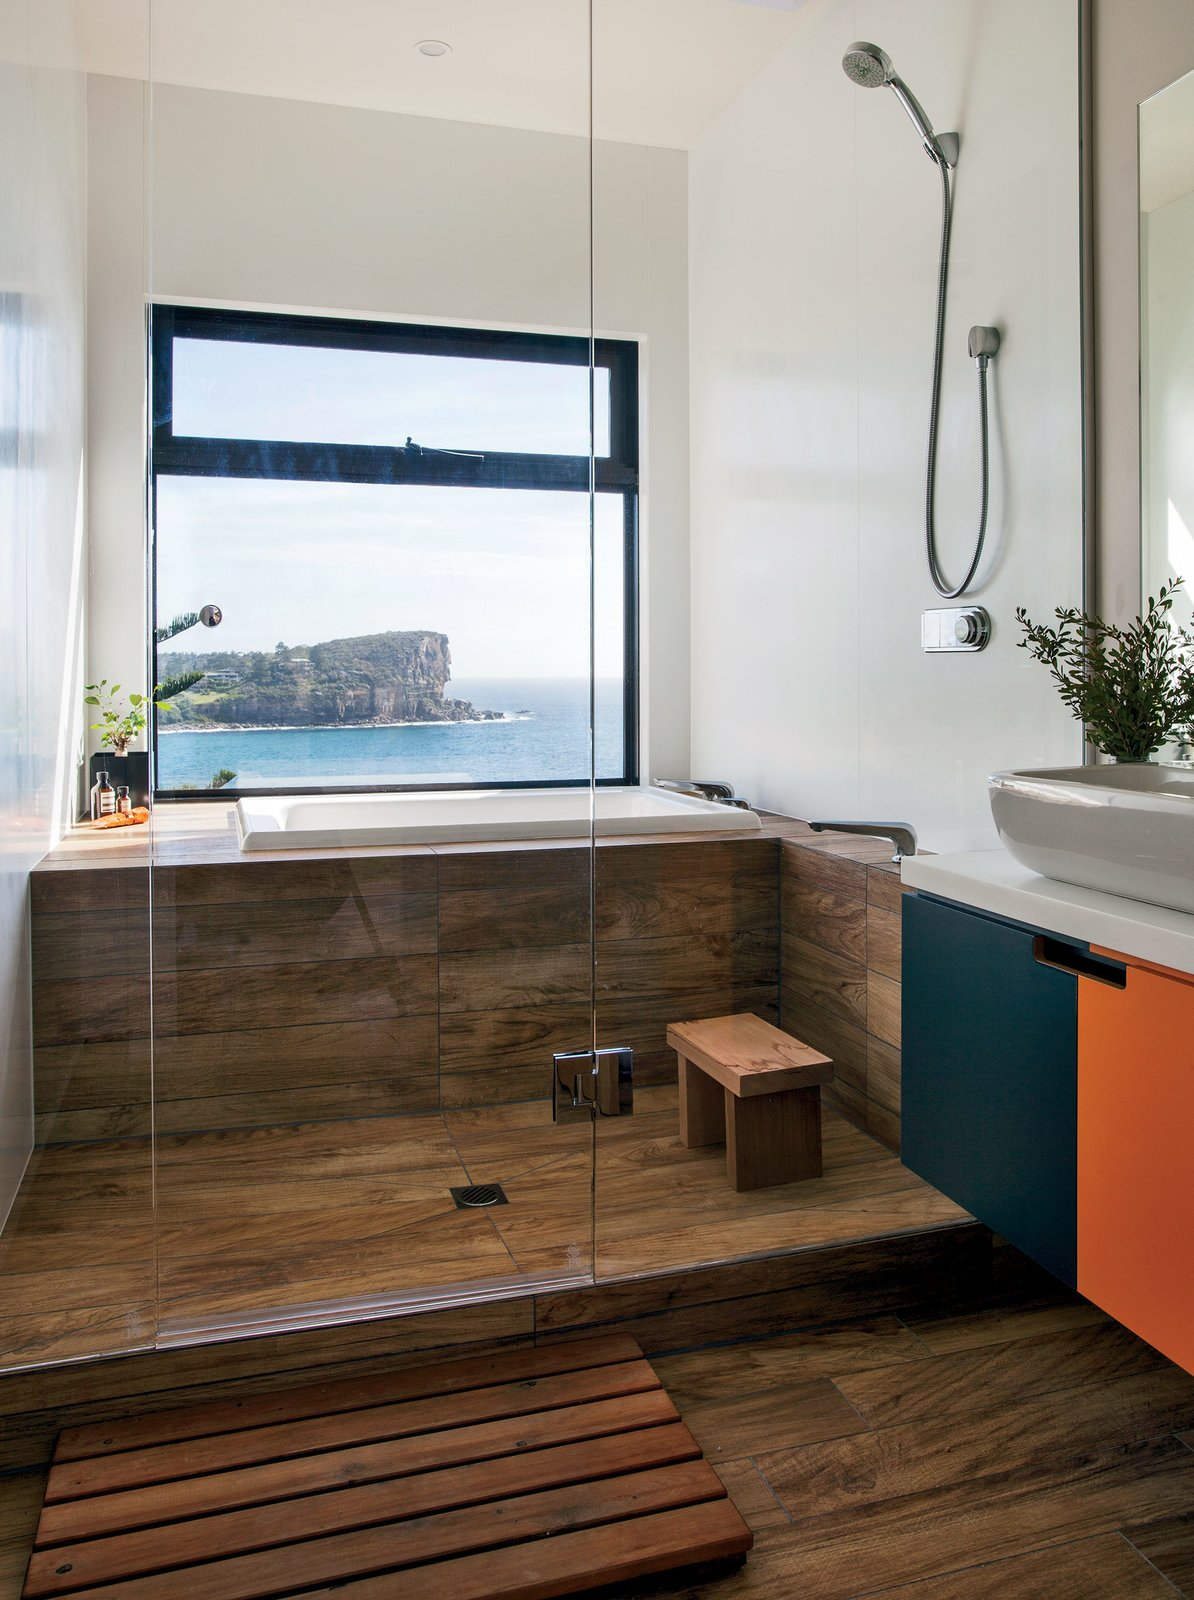 Photo 31 of 40 in 40 Modern Bathtubs That Soak In the View from Lake ...